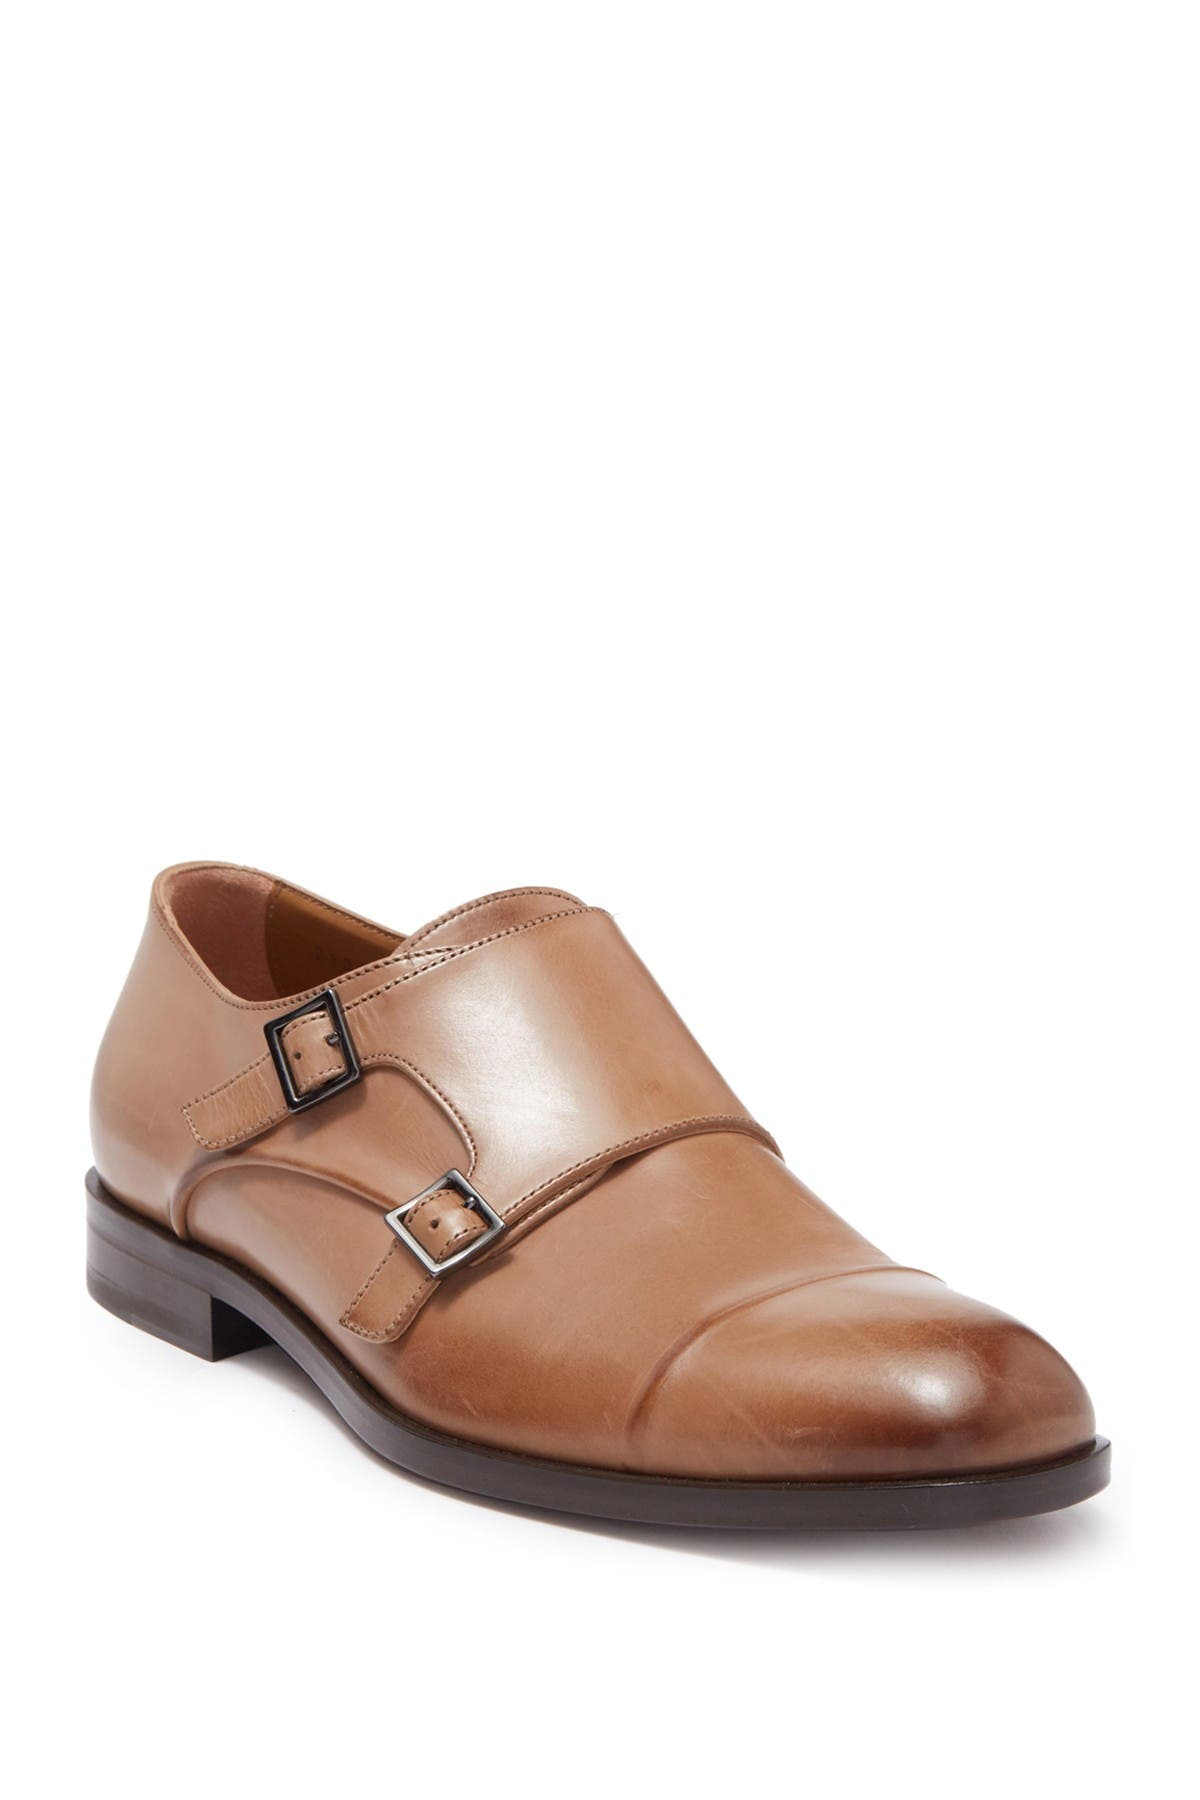 Image of BOSS Stanford Leather Monk Strap Loafer